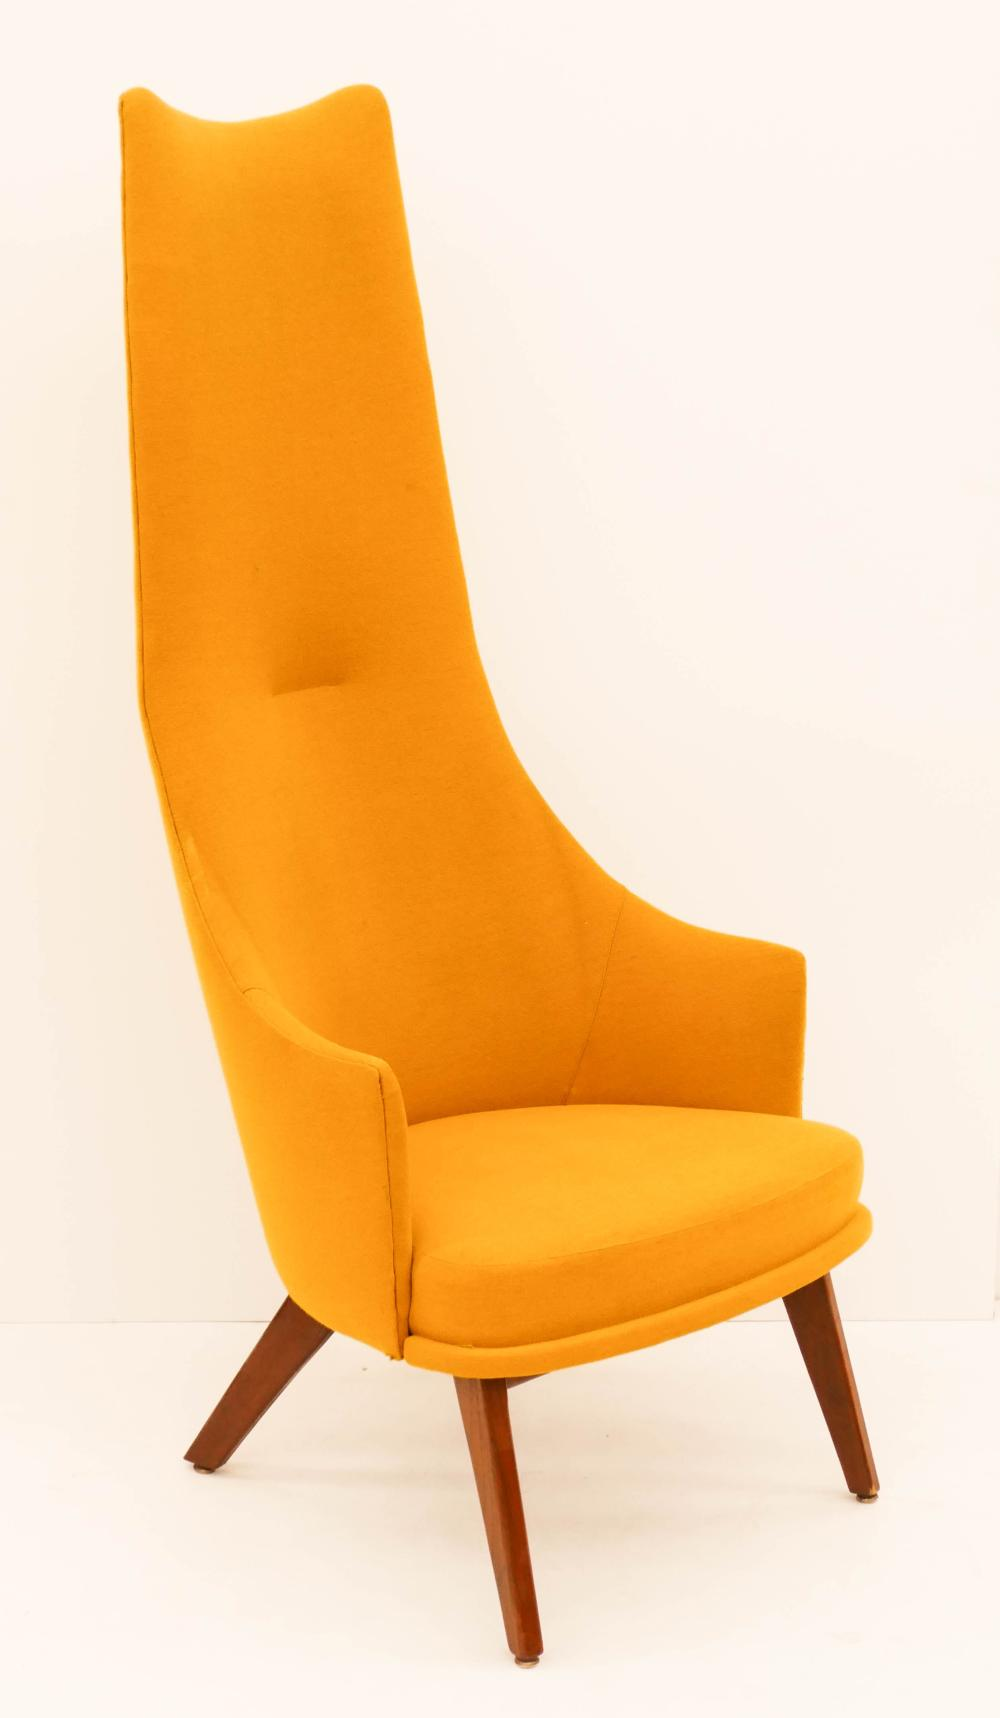 Excellent Adrian Pearsall For Craft Assoc Yellow Lounge Chair 57X24 Camellatalisay Diy Chair Ideas Camellatalisaycom